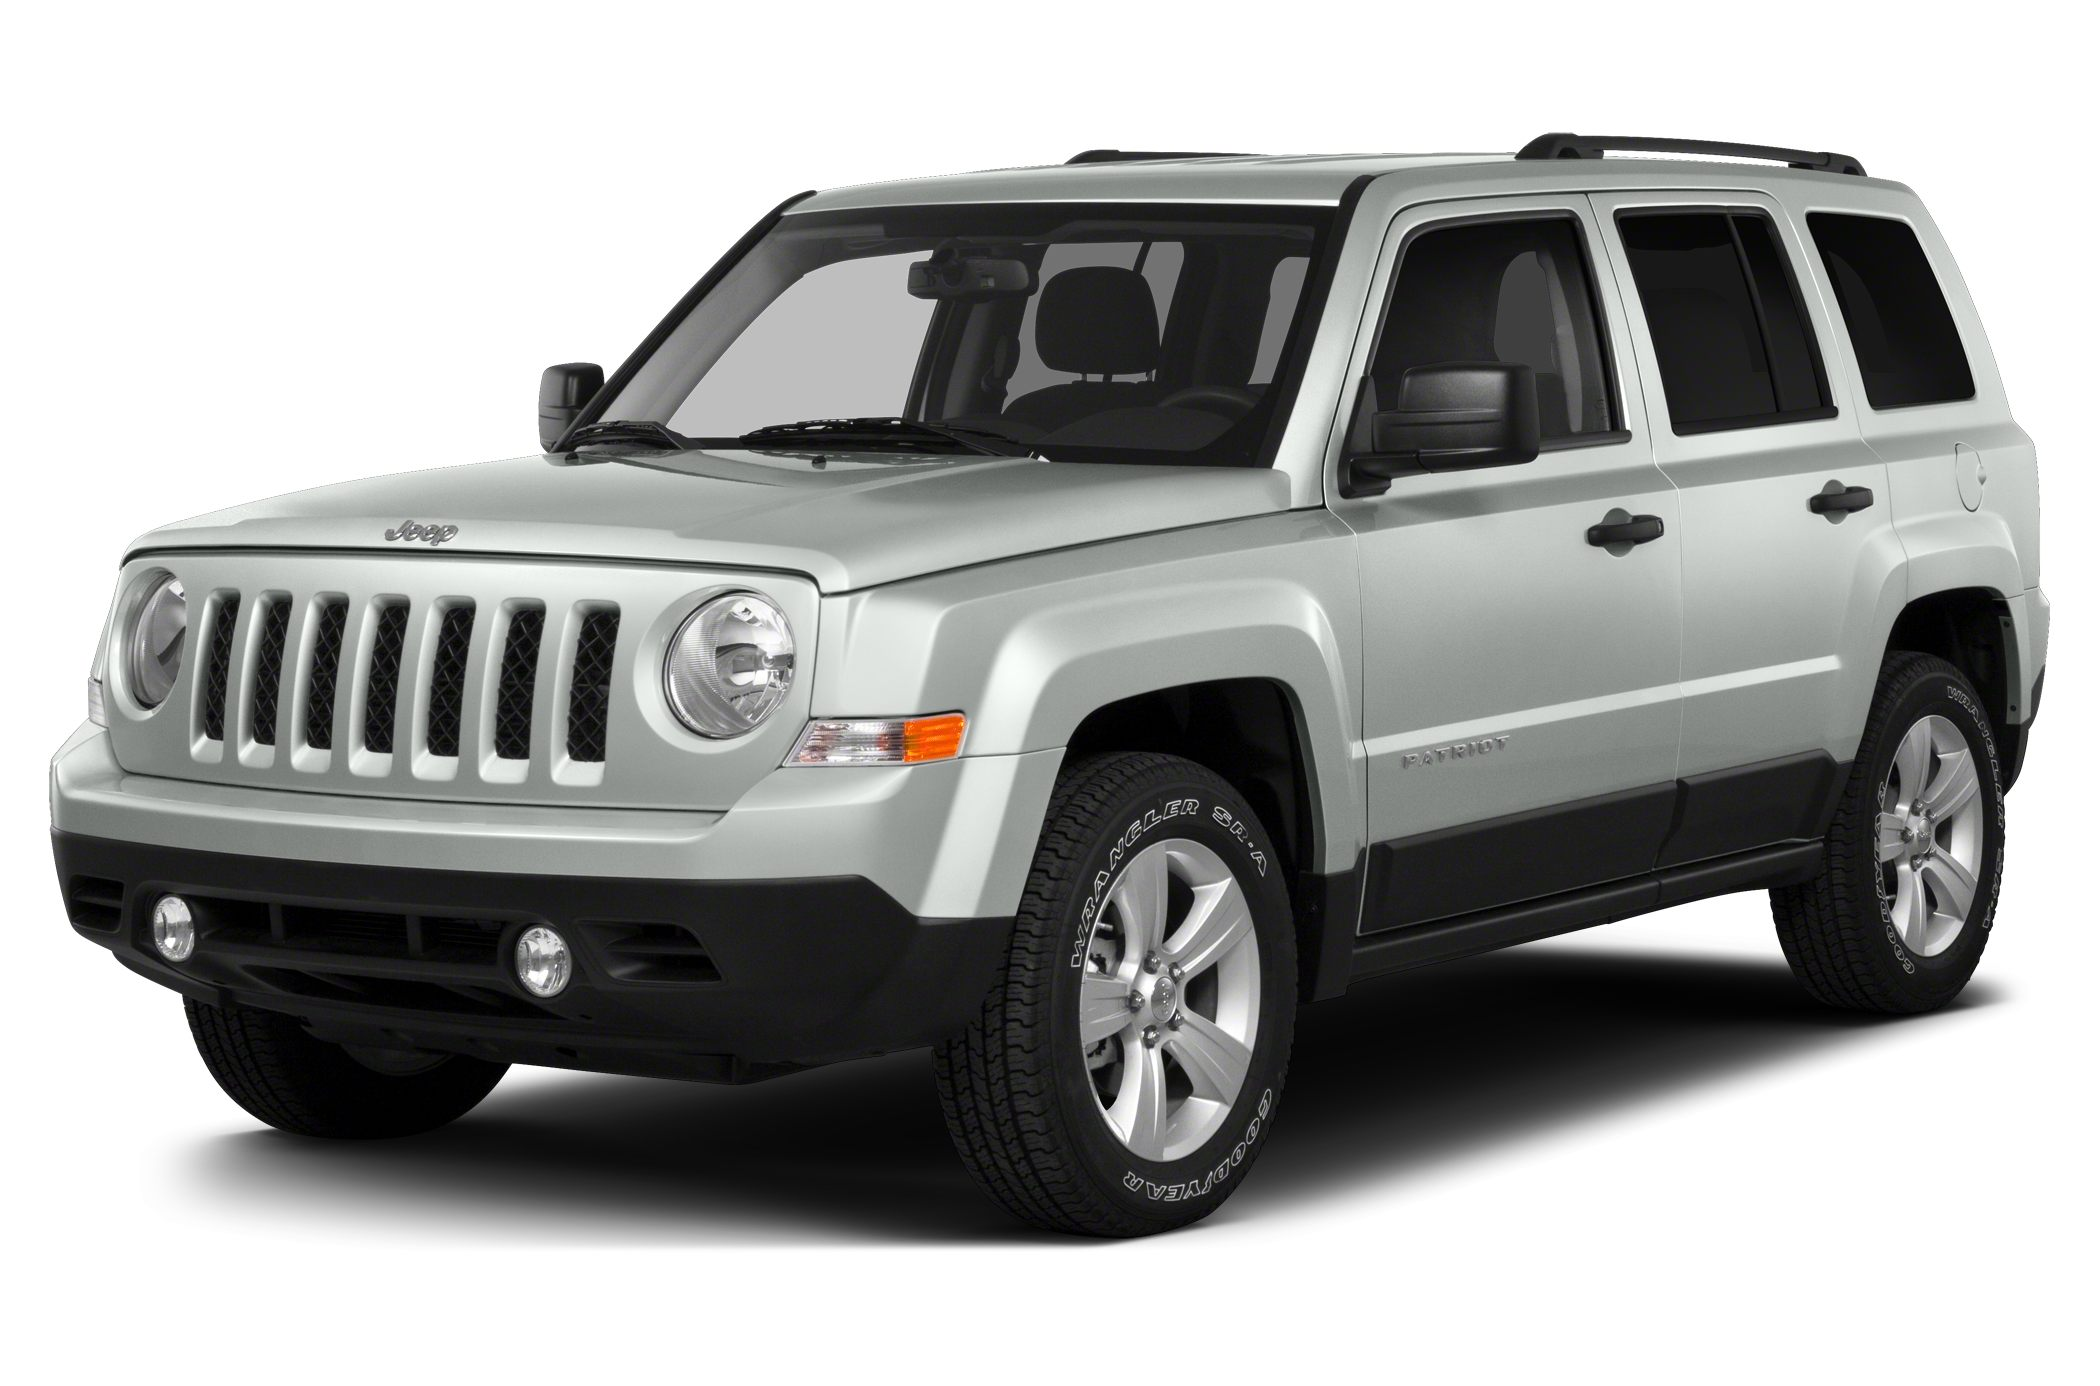 2013 Jeep Patriot Sport SUV for sale in Boston for $14,479 with 47,305 miles.